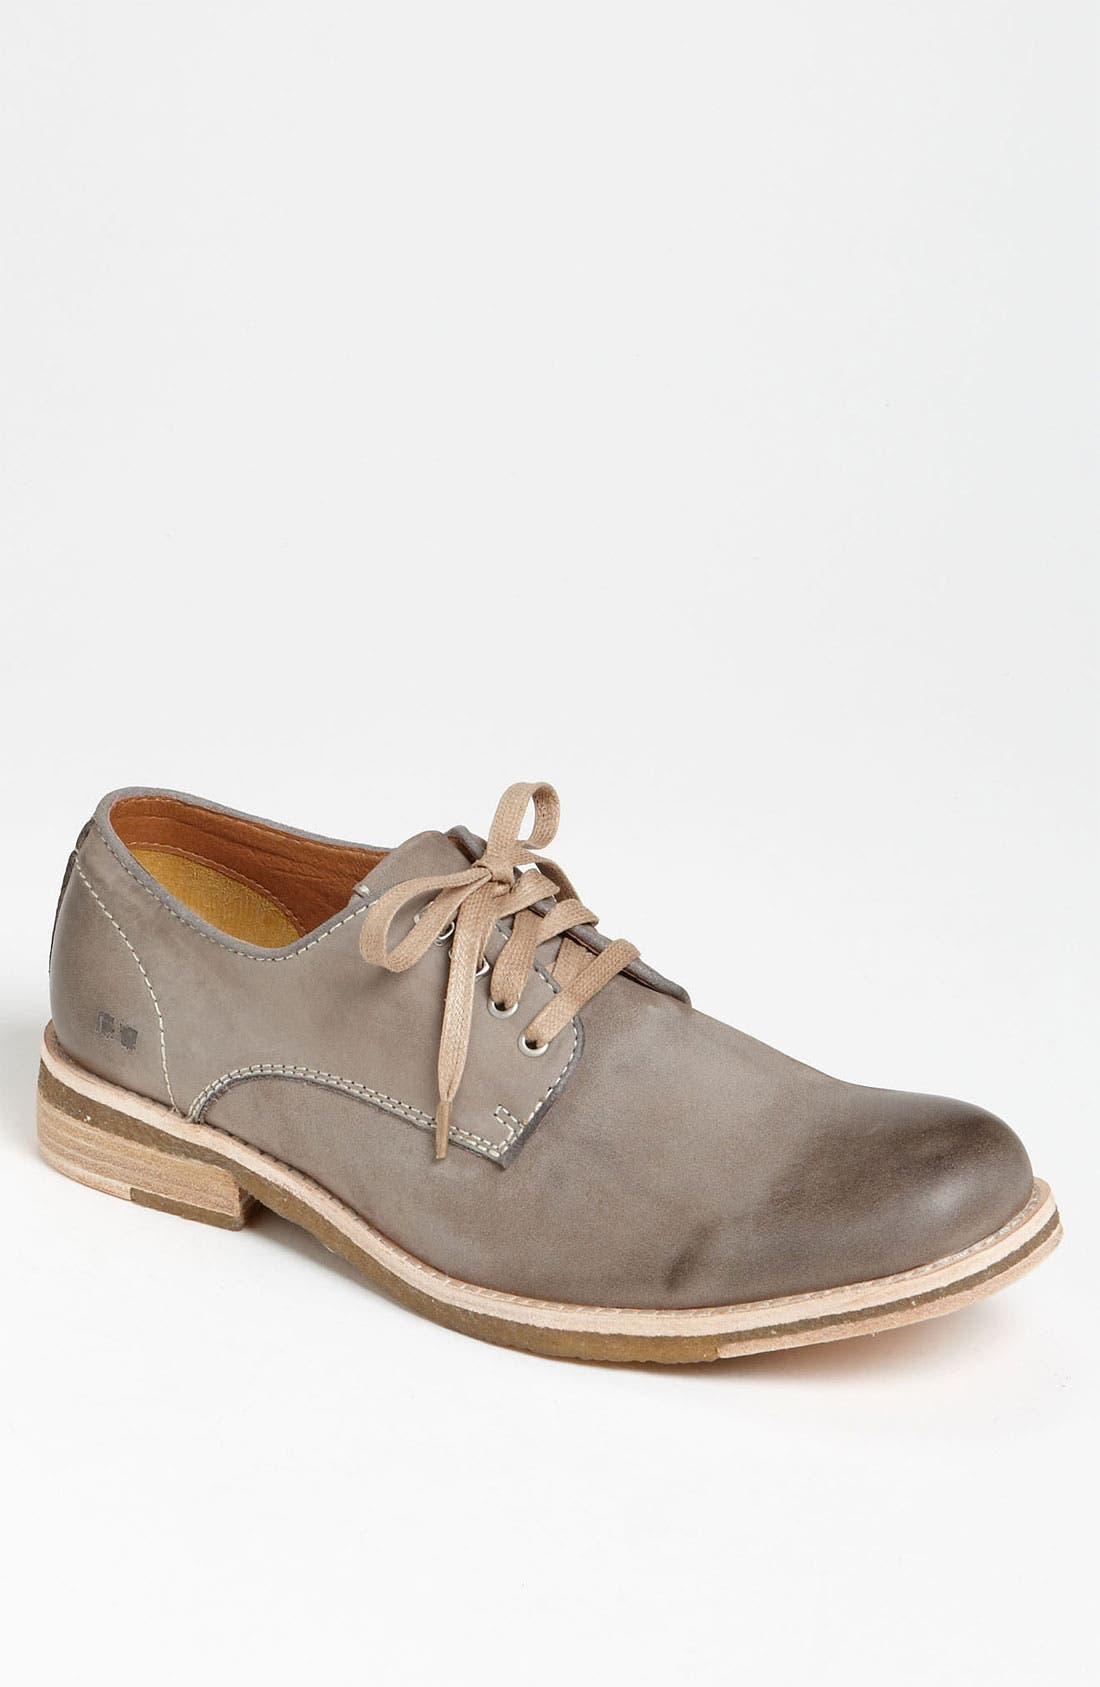 Main Image - Bed Stu 'Pennyworth' Buck Shoe (Online Only)